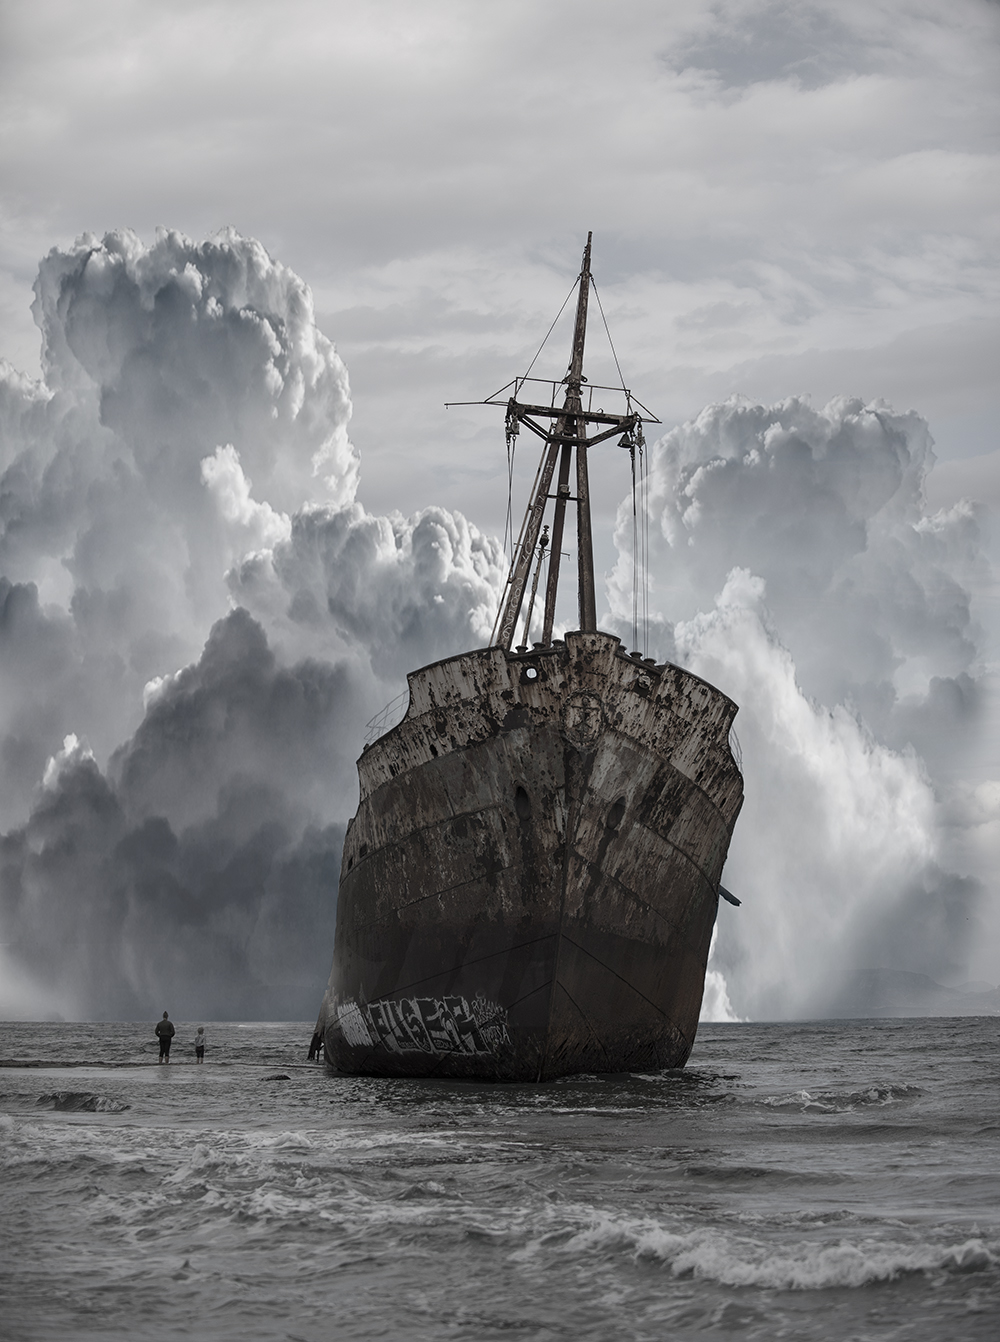 General 1000x1342 ship sea clouds shipwreck graffiti abandoned people portrait display rust old outdoors